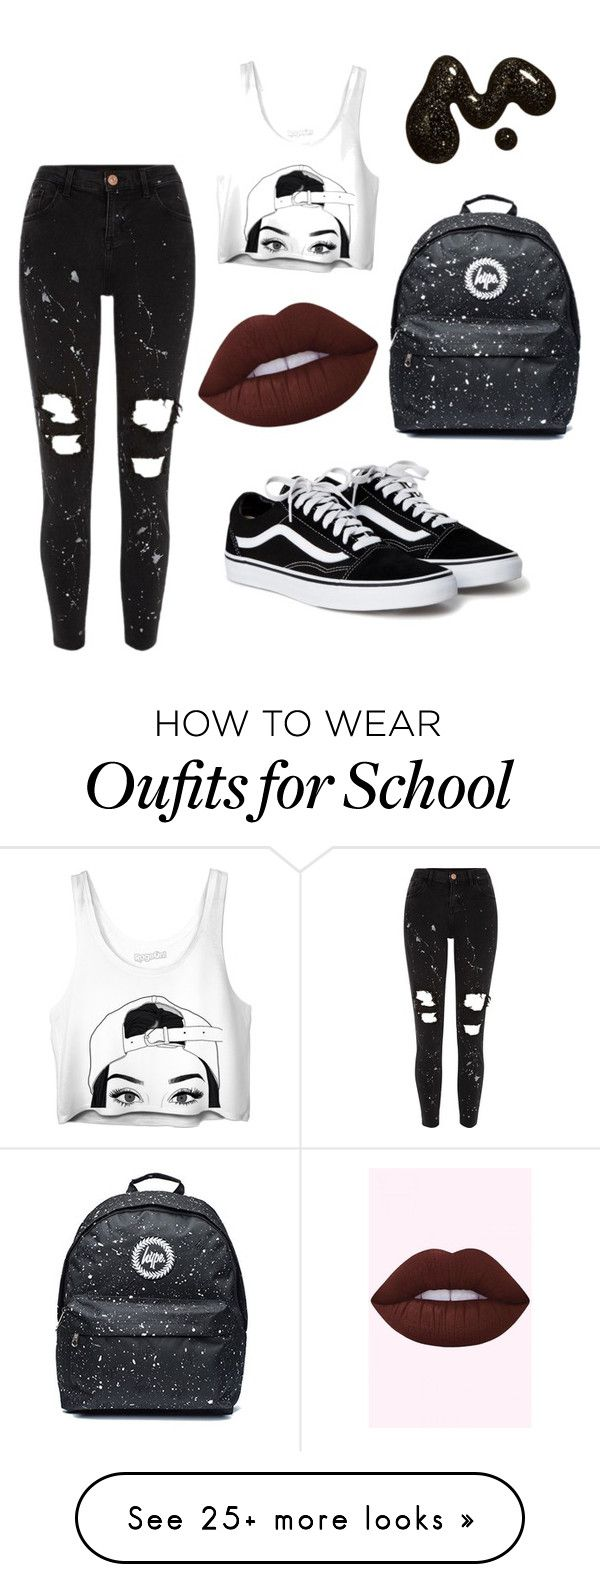 """Untitled #5"" by melon-0912 on Polyvore featuring River Island"